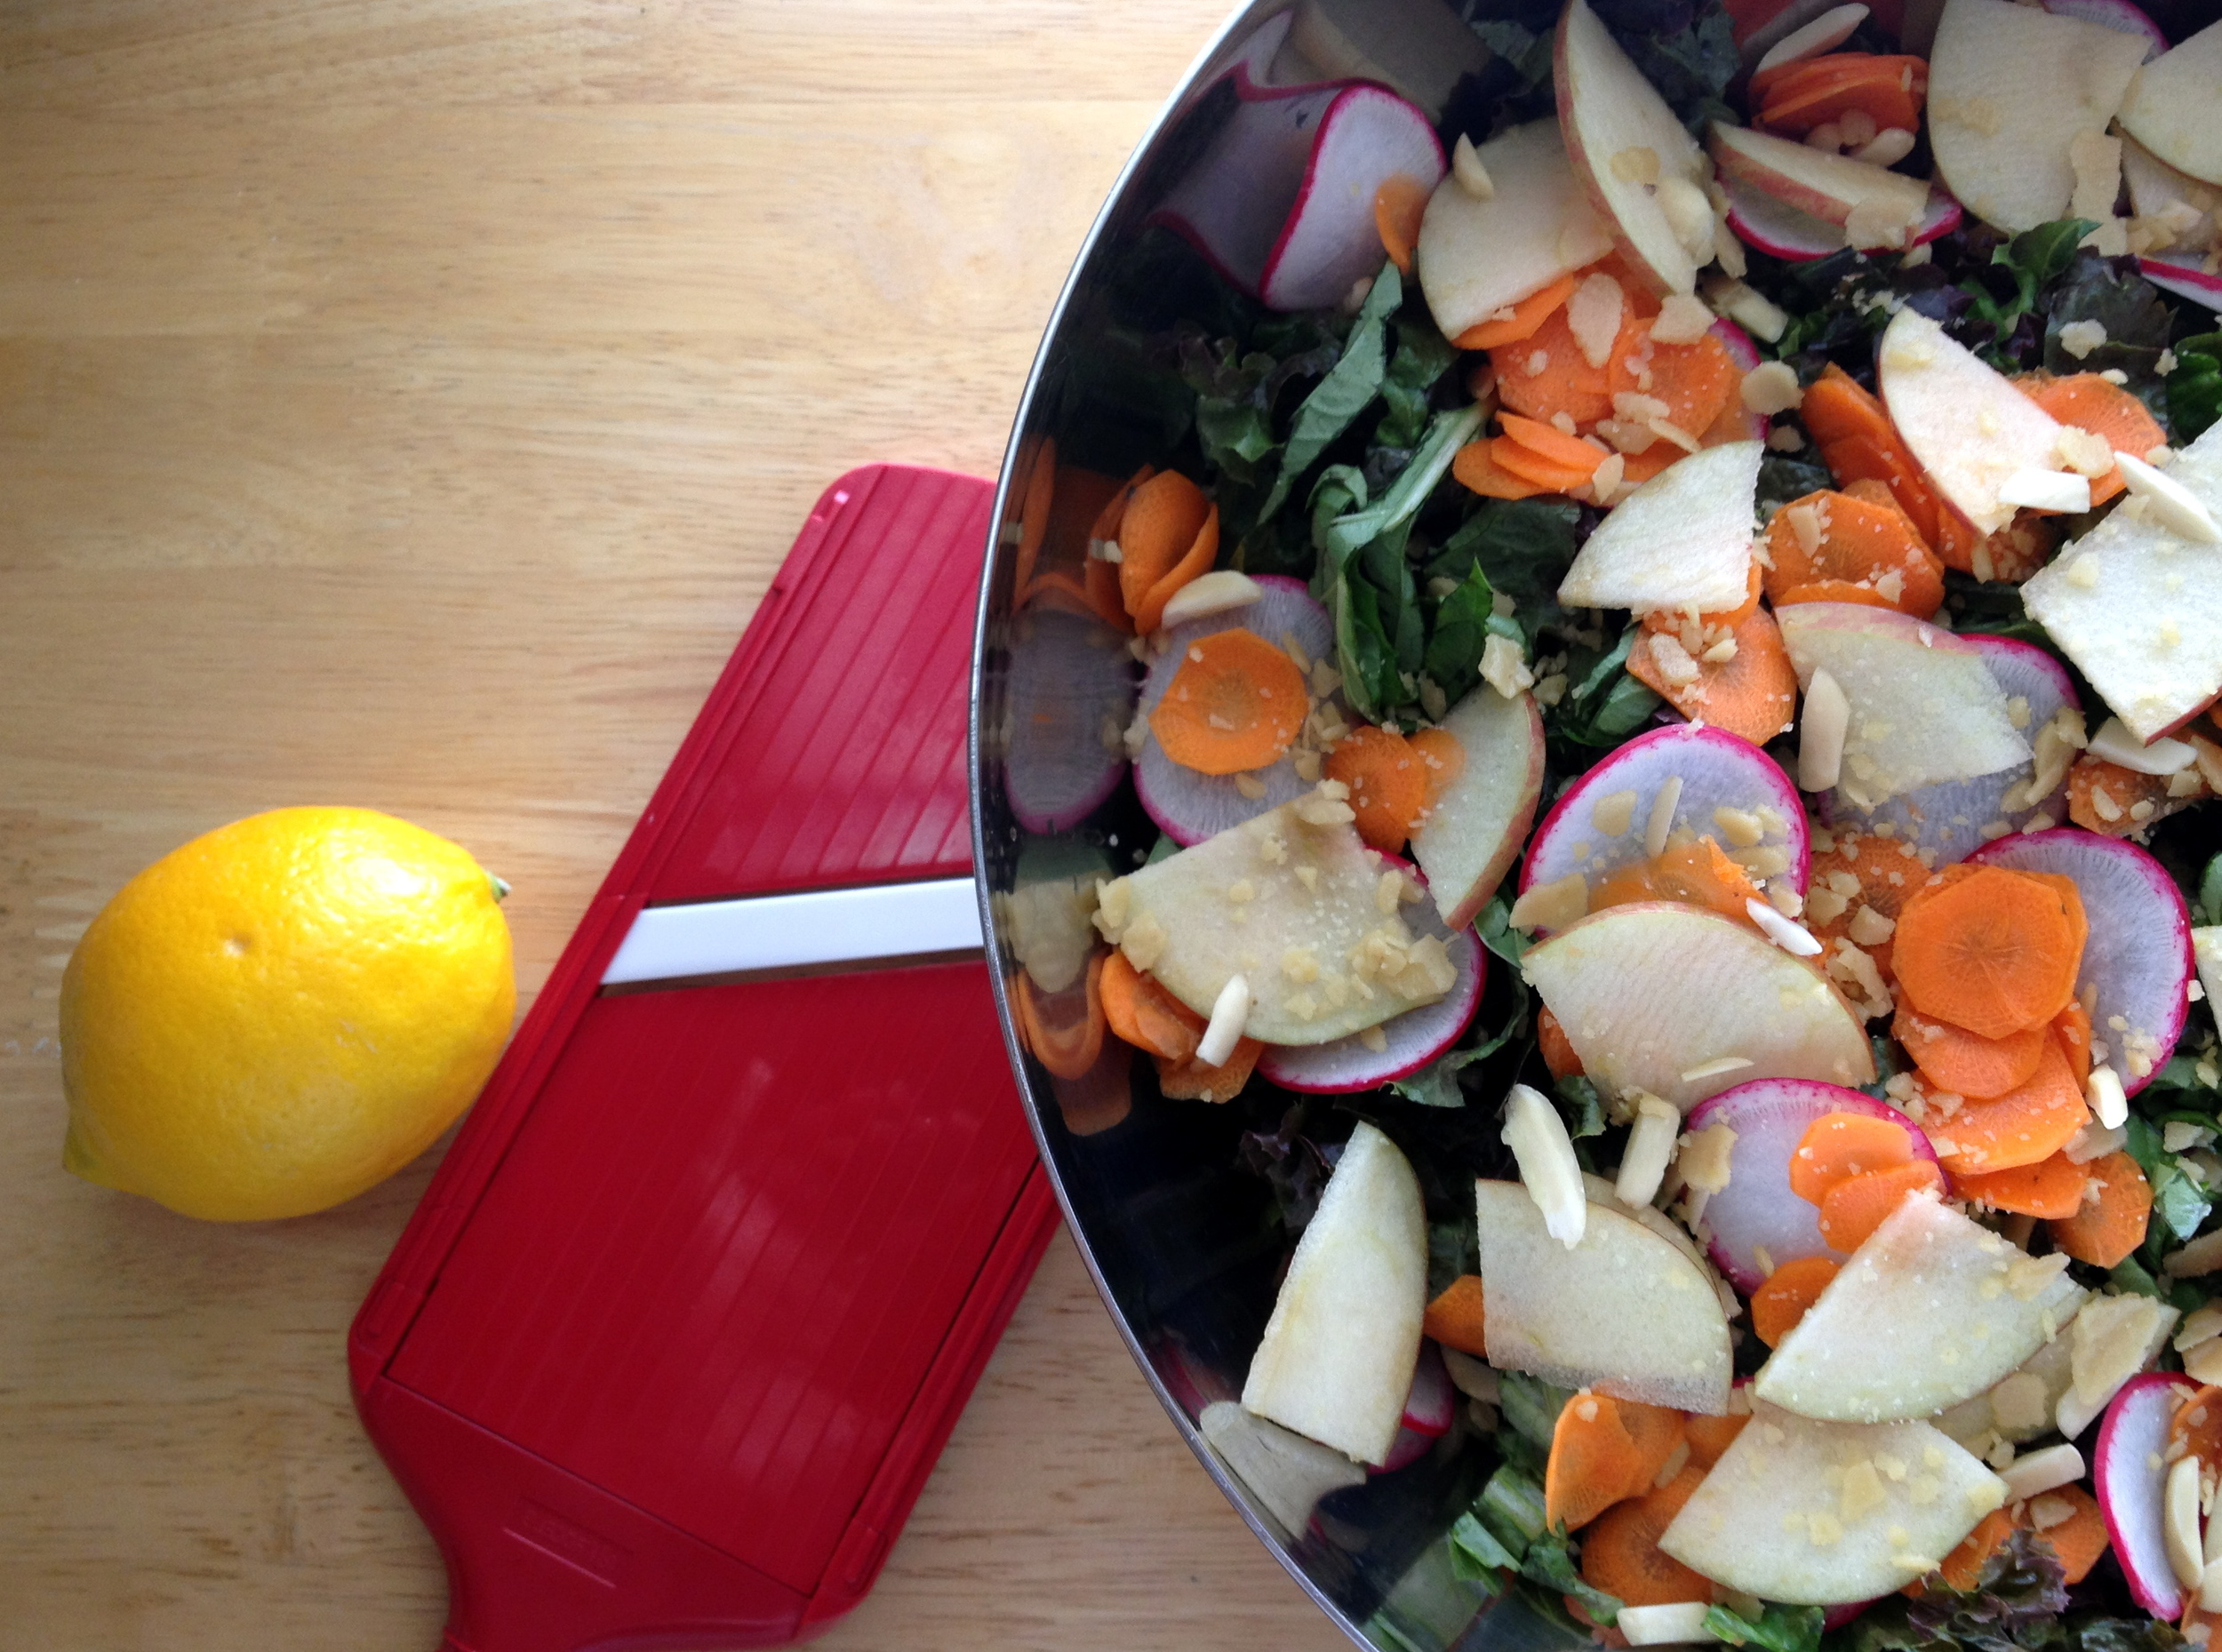 Salad with sliced carrot, pear, and radish topped with pine nut parmesan.